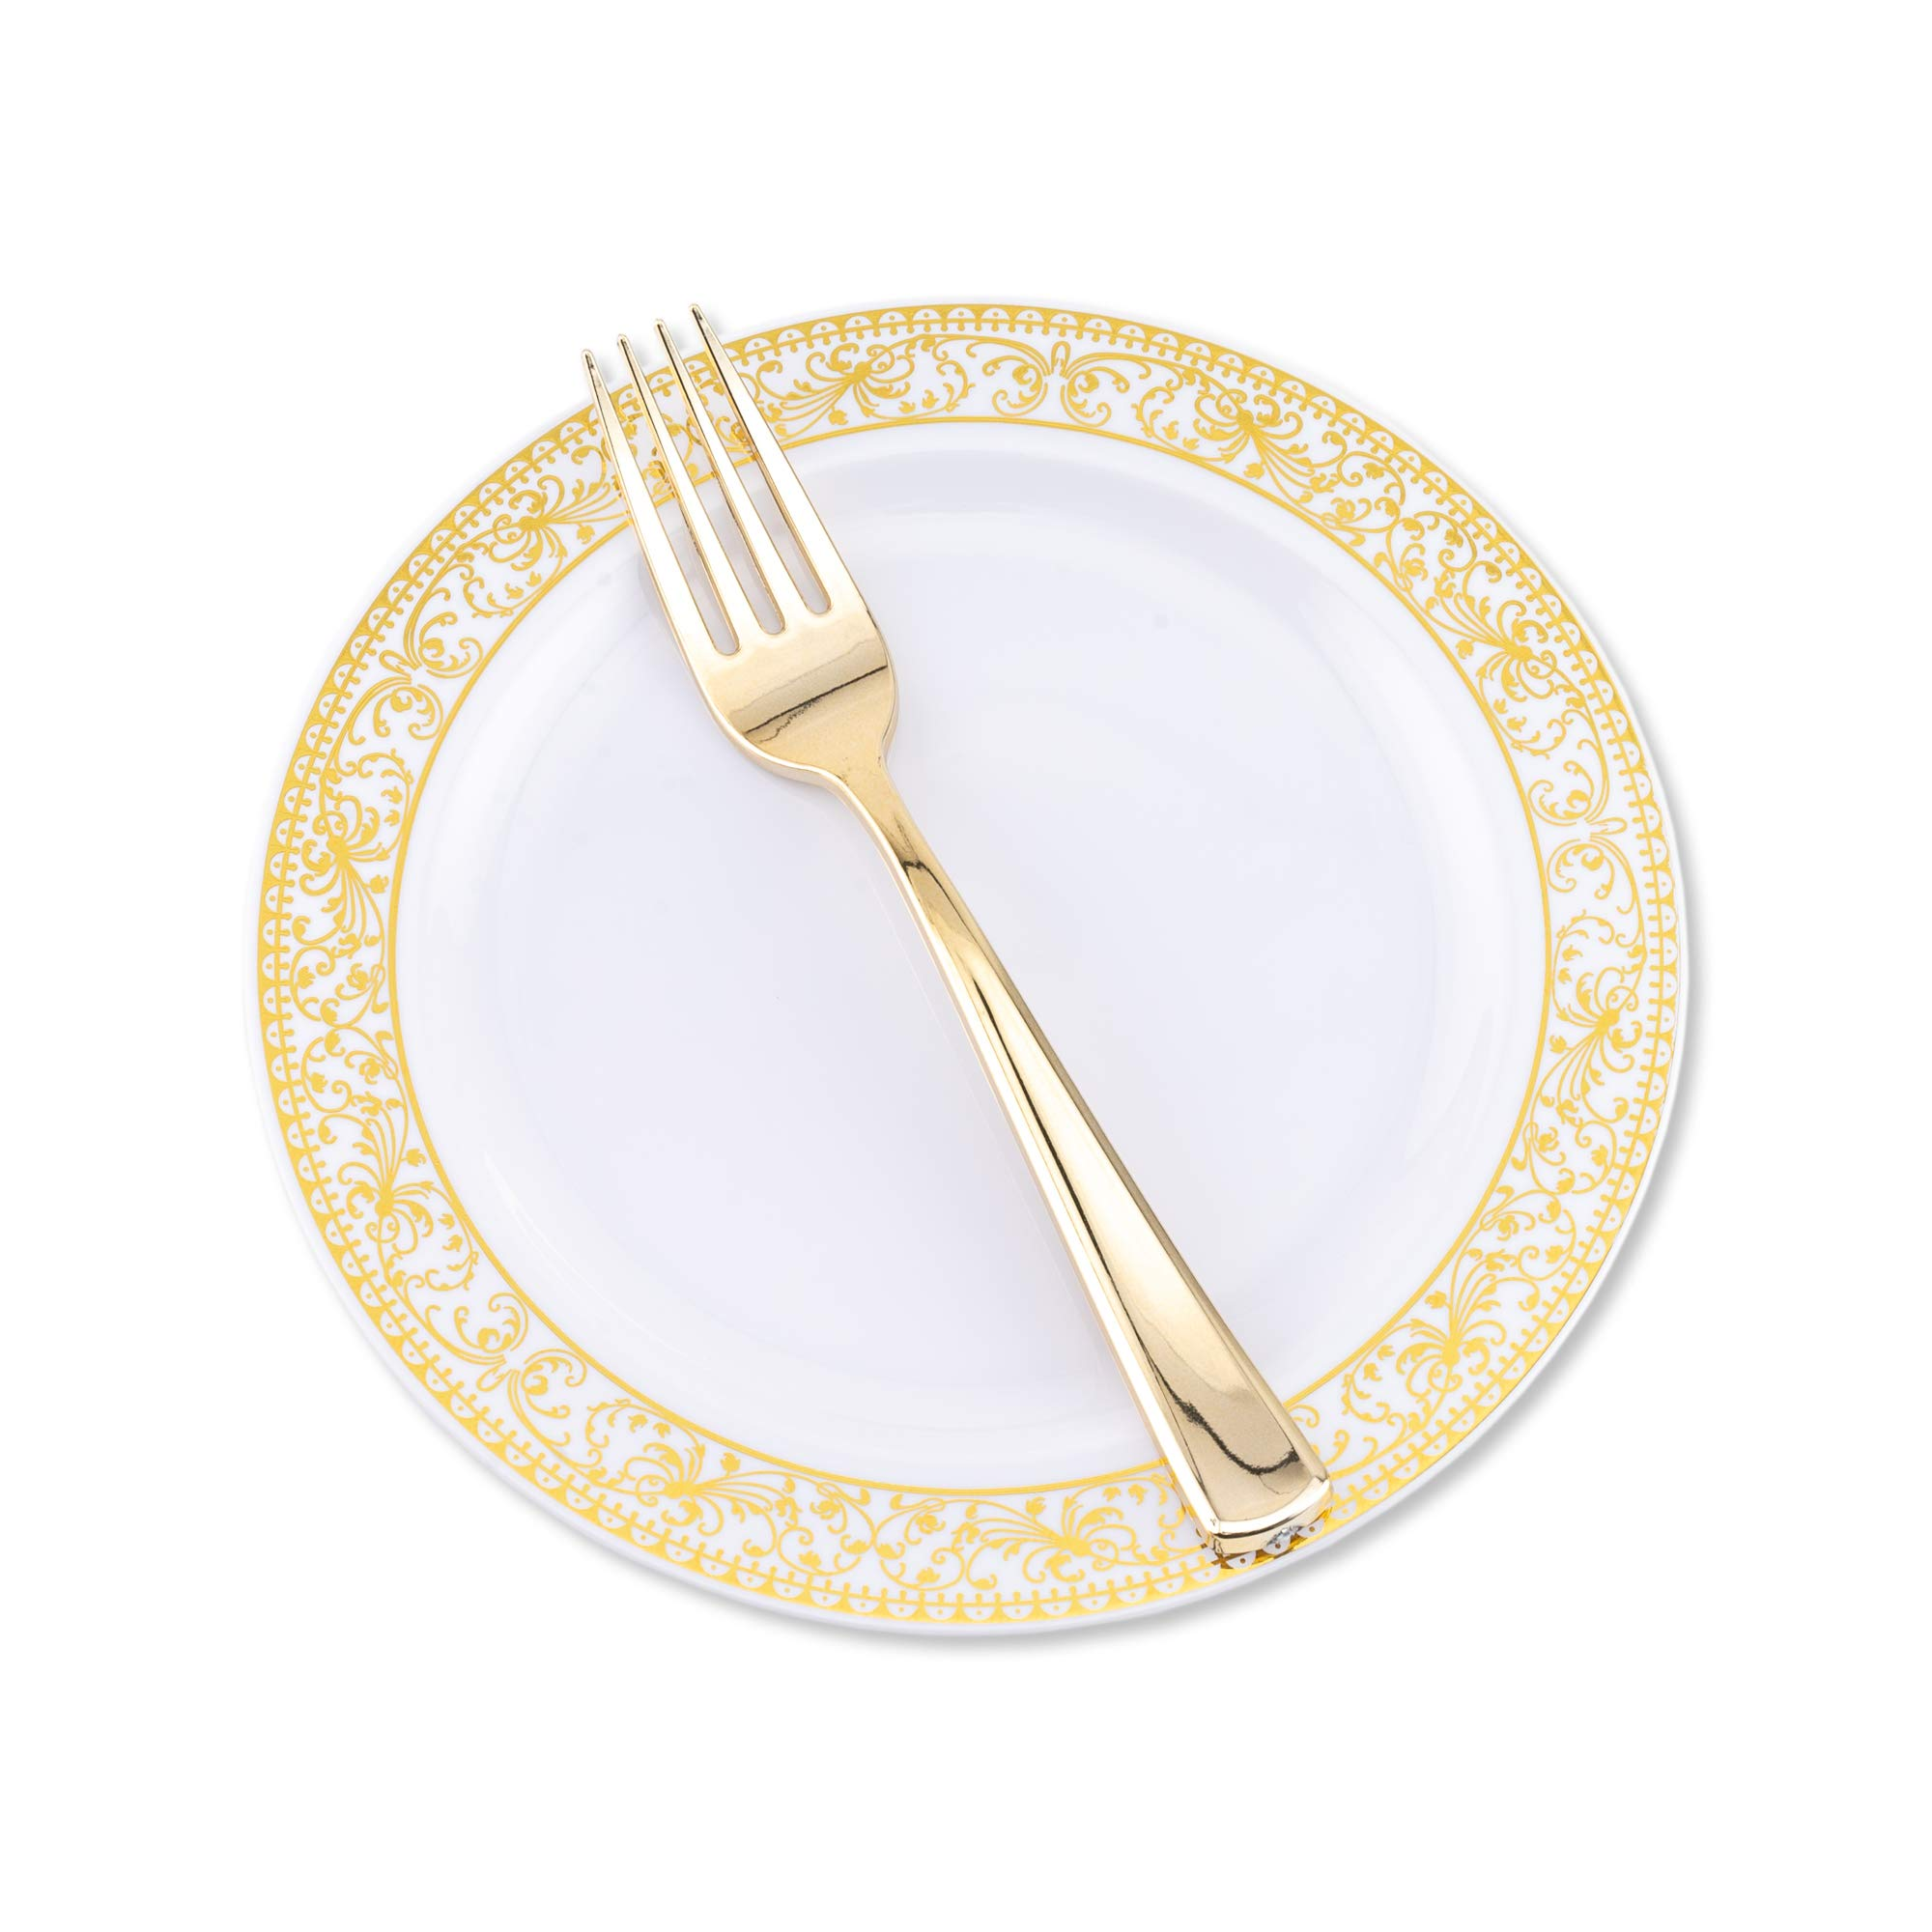 100 pc Premium Gold Rimmed Plastic Disposable Plates With Golden Fork Included Nice Upscale Elegant Dessert Plate and Fork Set-Achor 7.5 Inch Gold Trim Plastic Plates